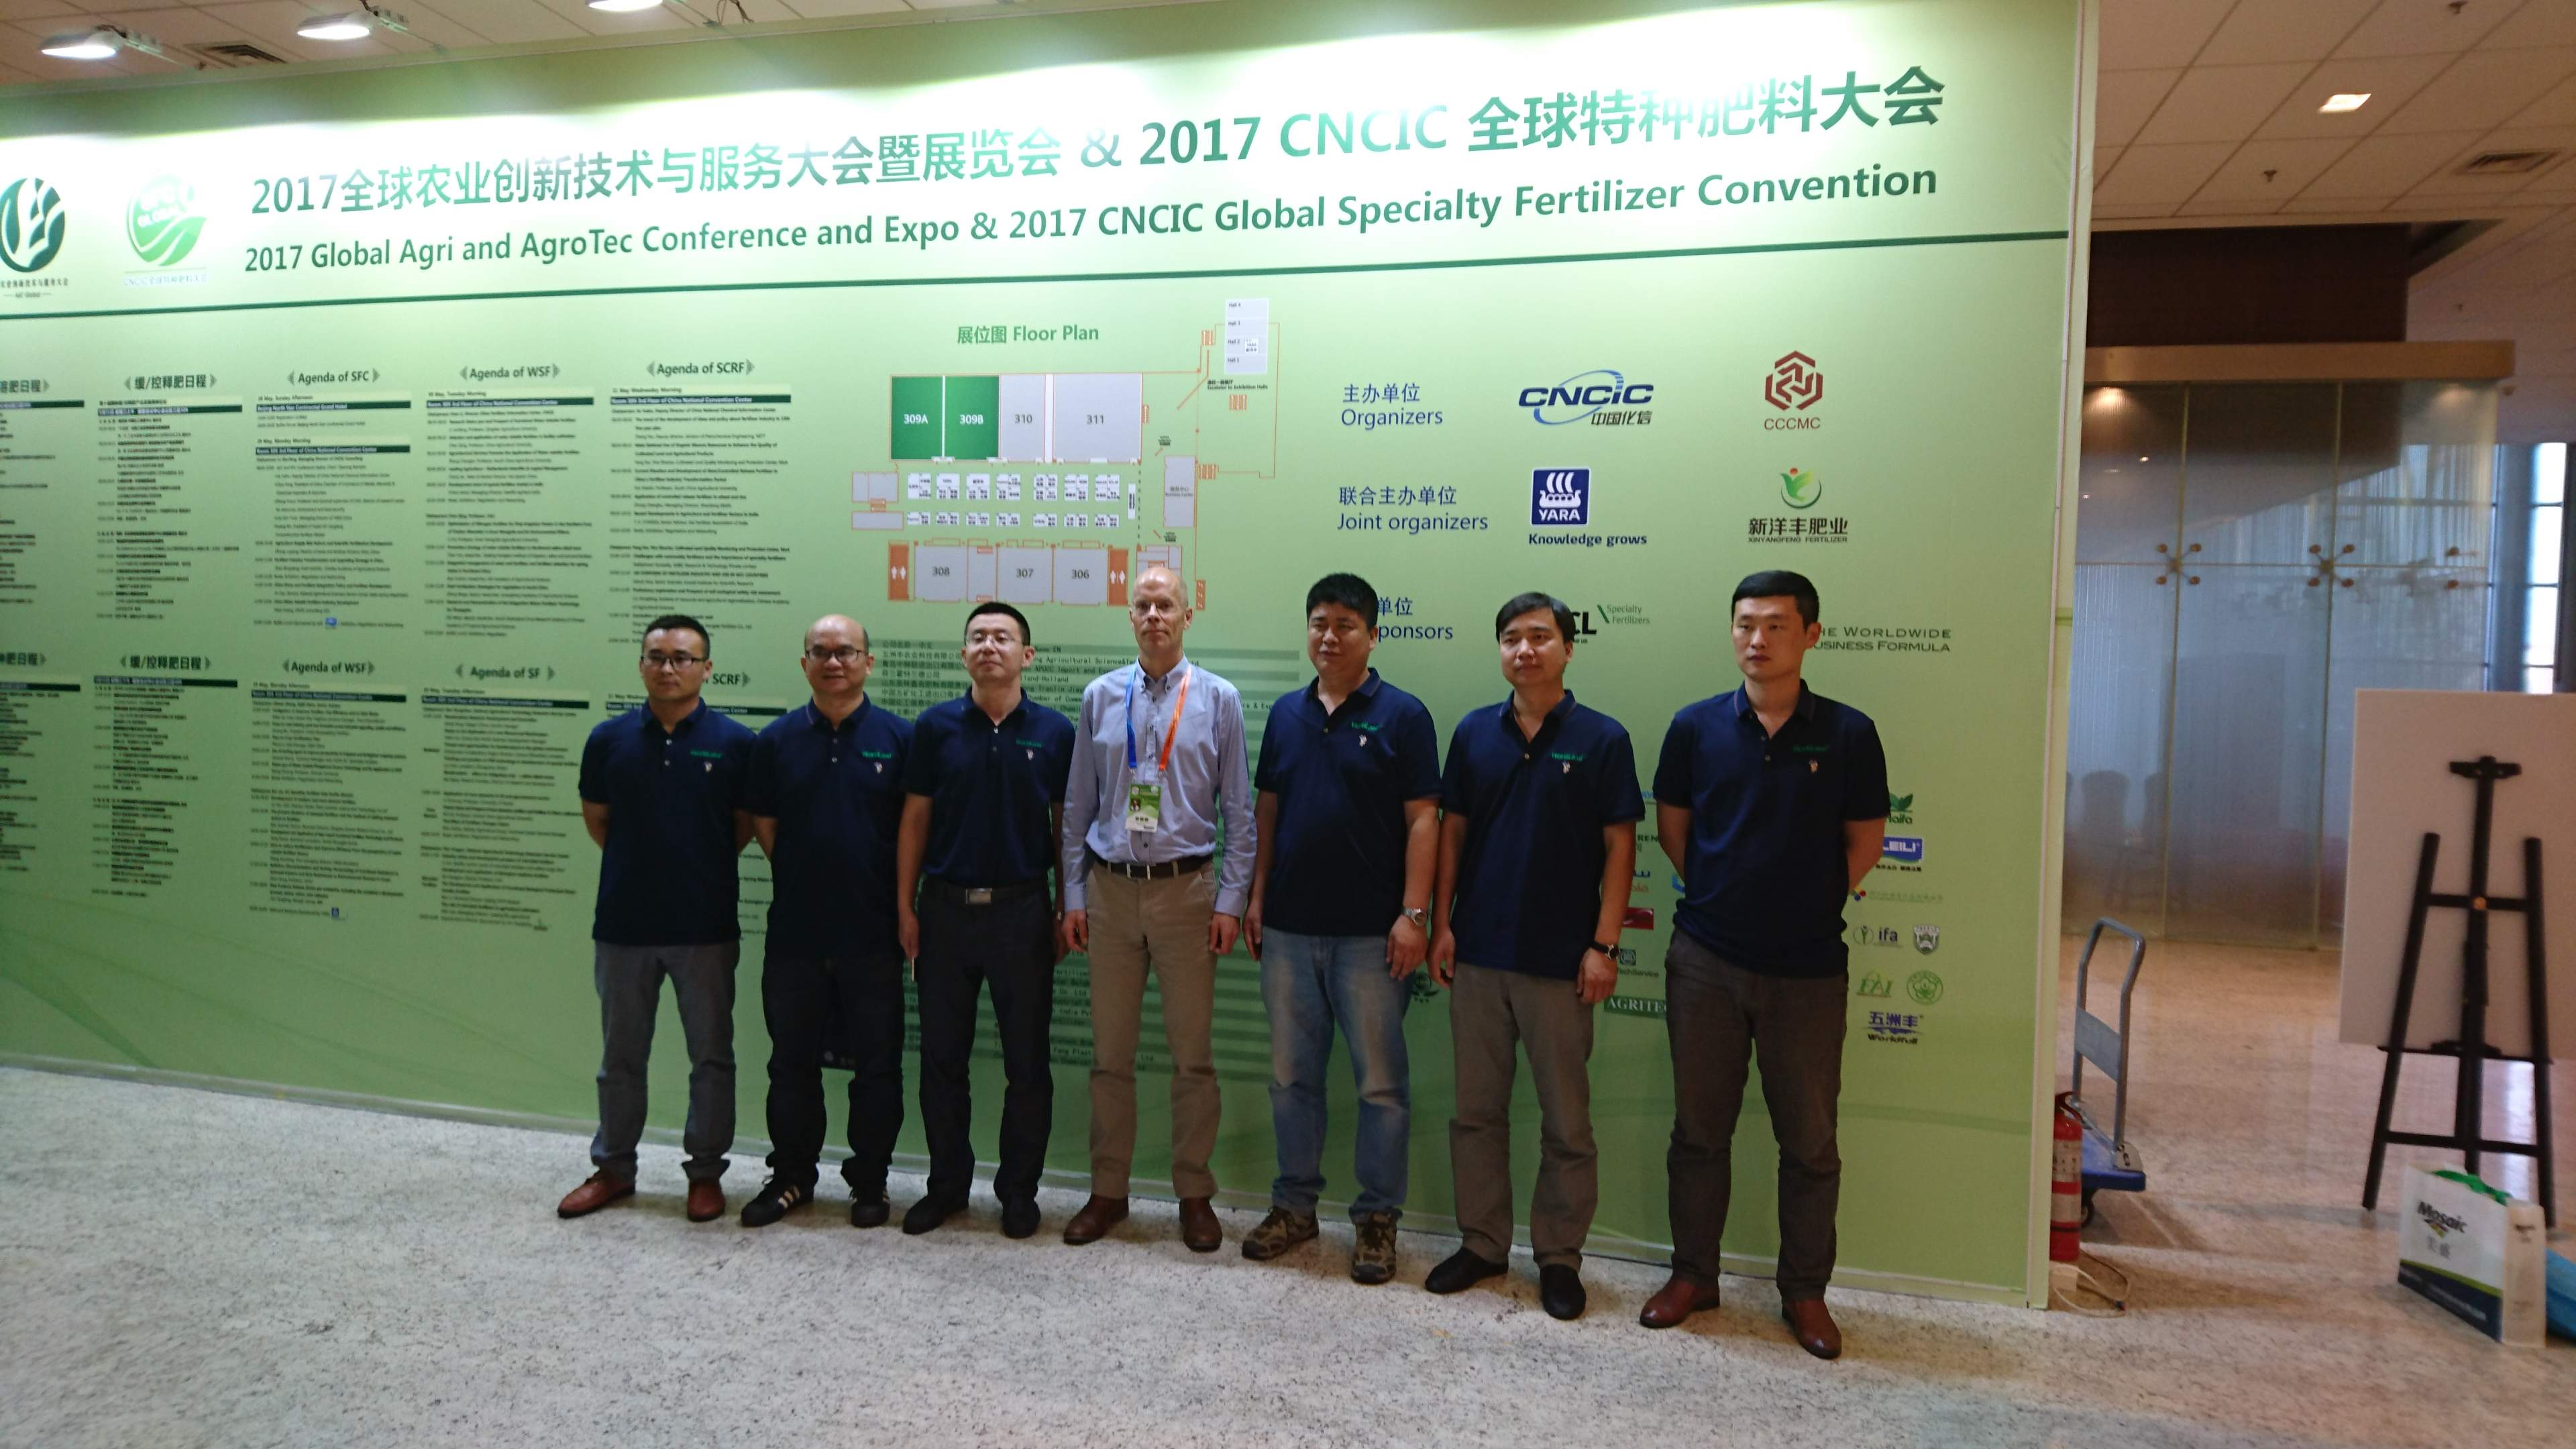 2017 Global Agri and AgroTec Conference and Expo – China